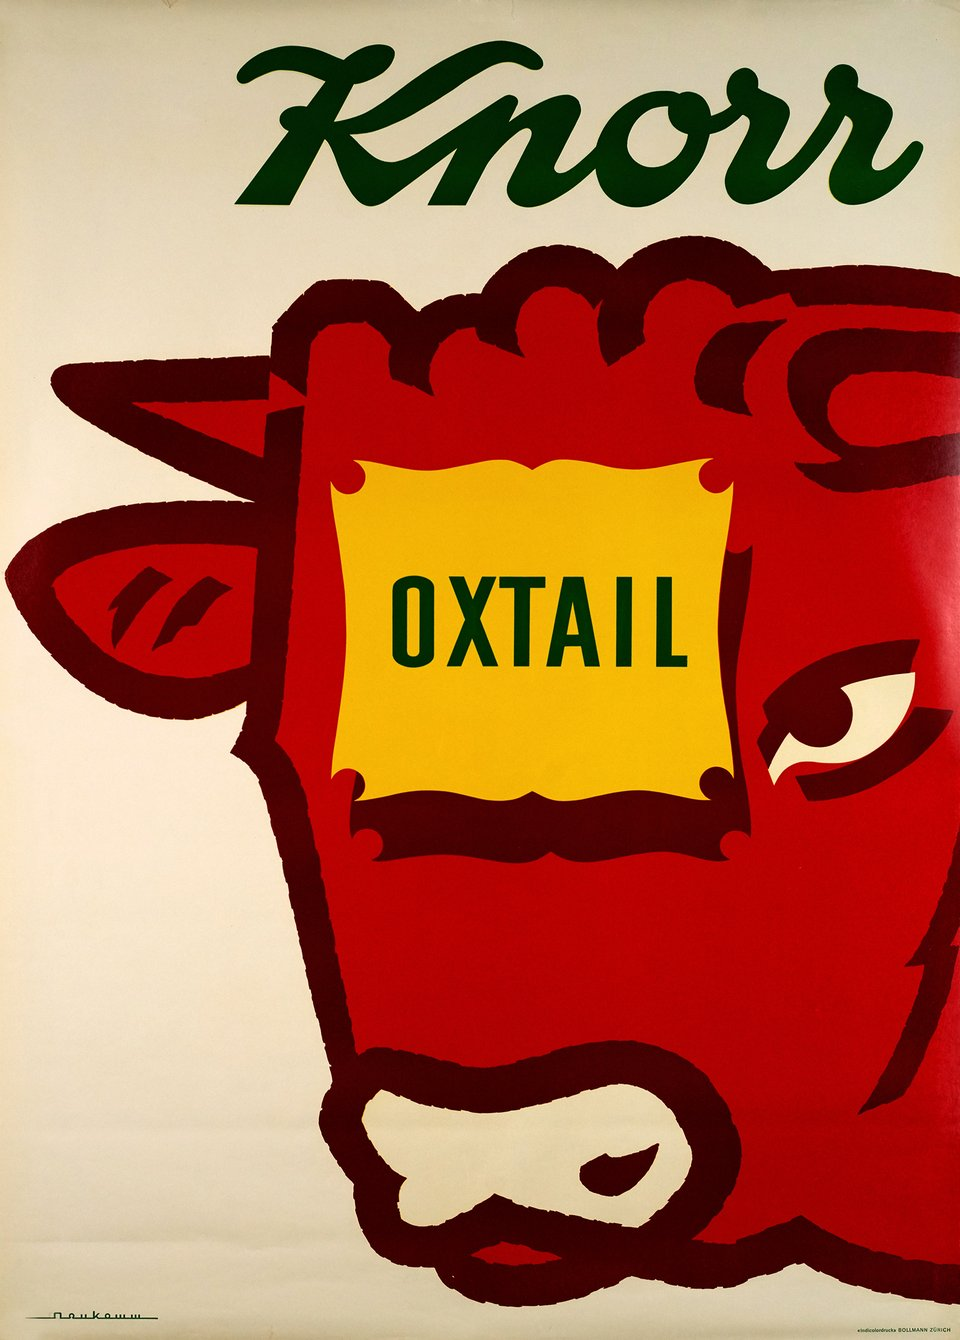 Knorr Oxtail – Affiche ancienne – Fred NEUKOMM – 1955